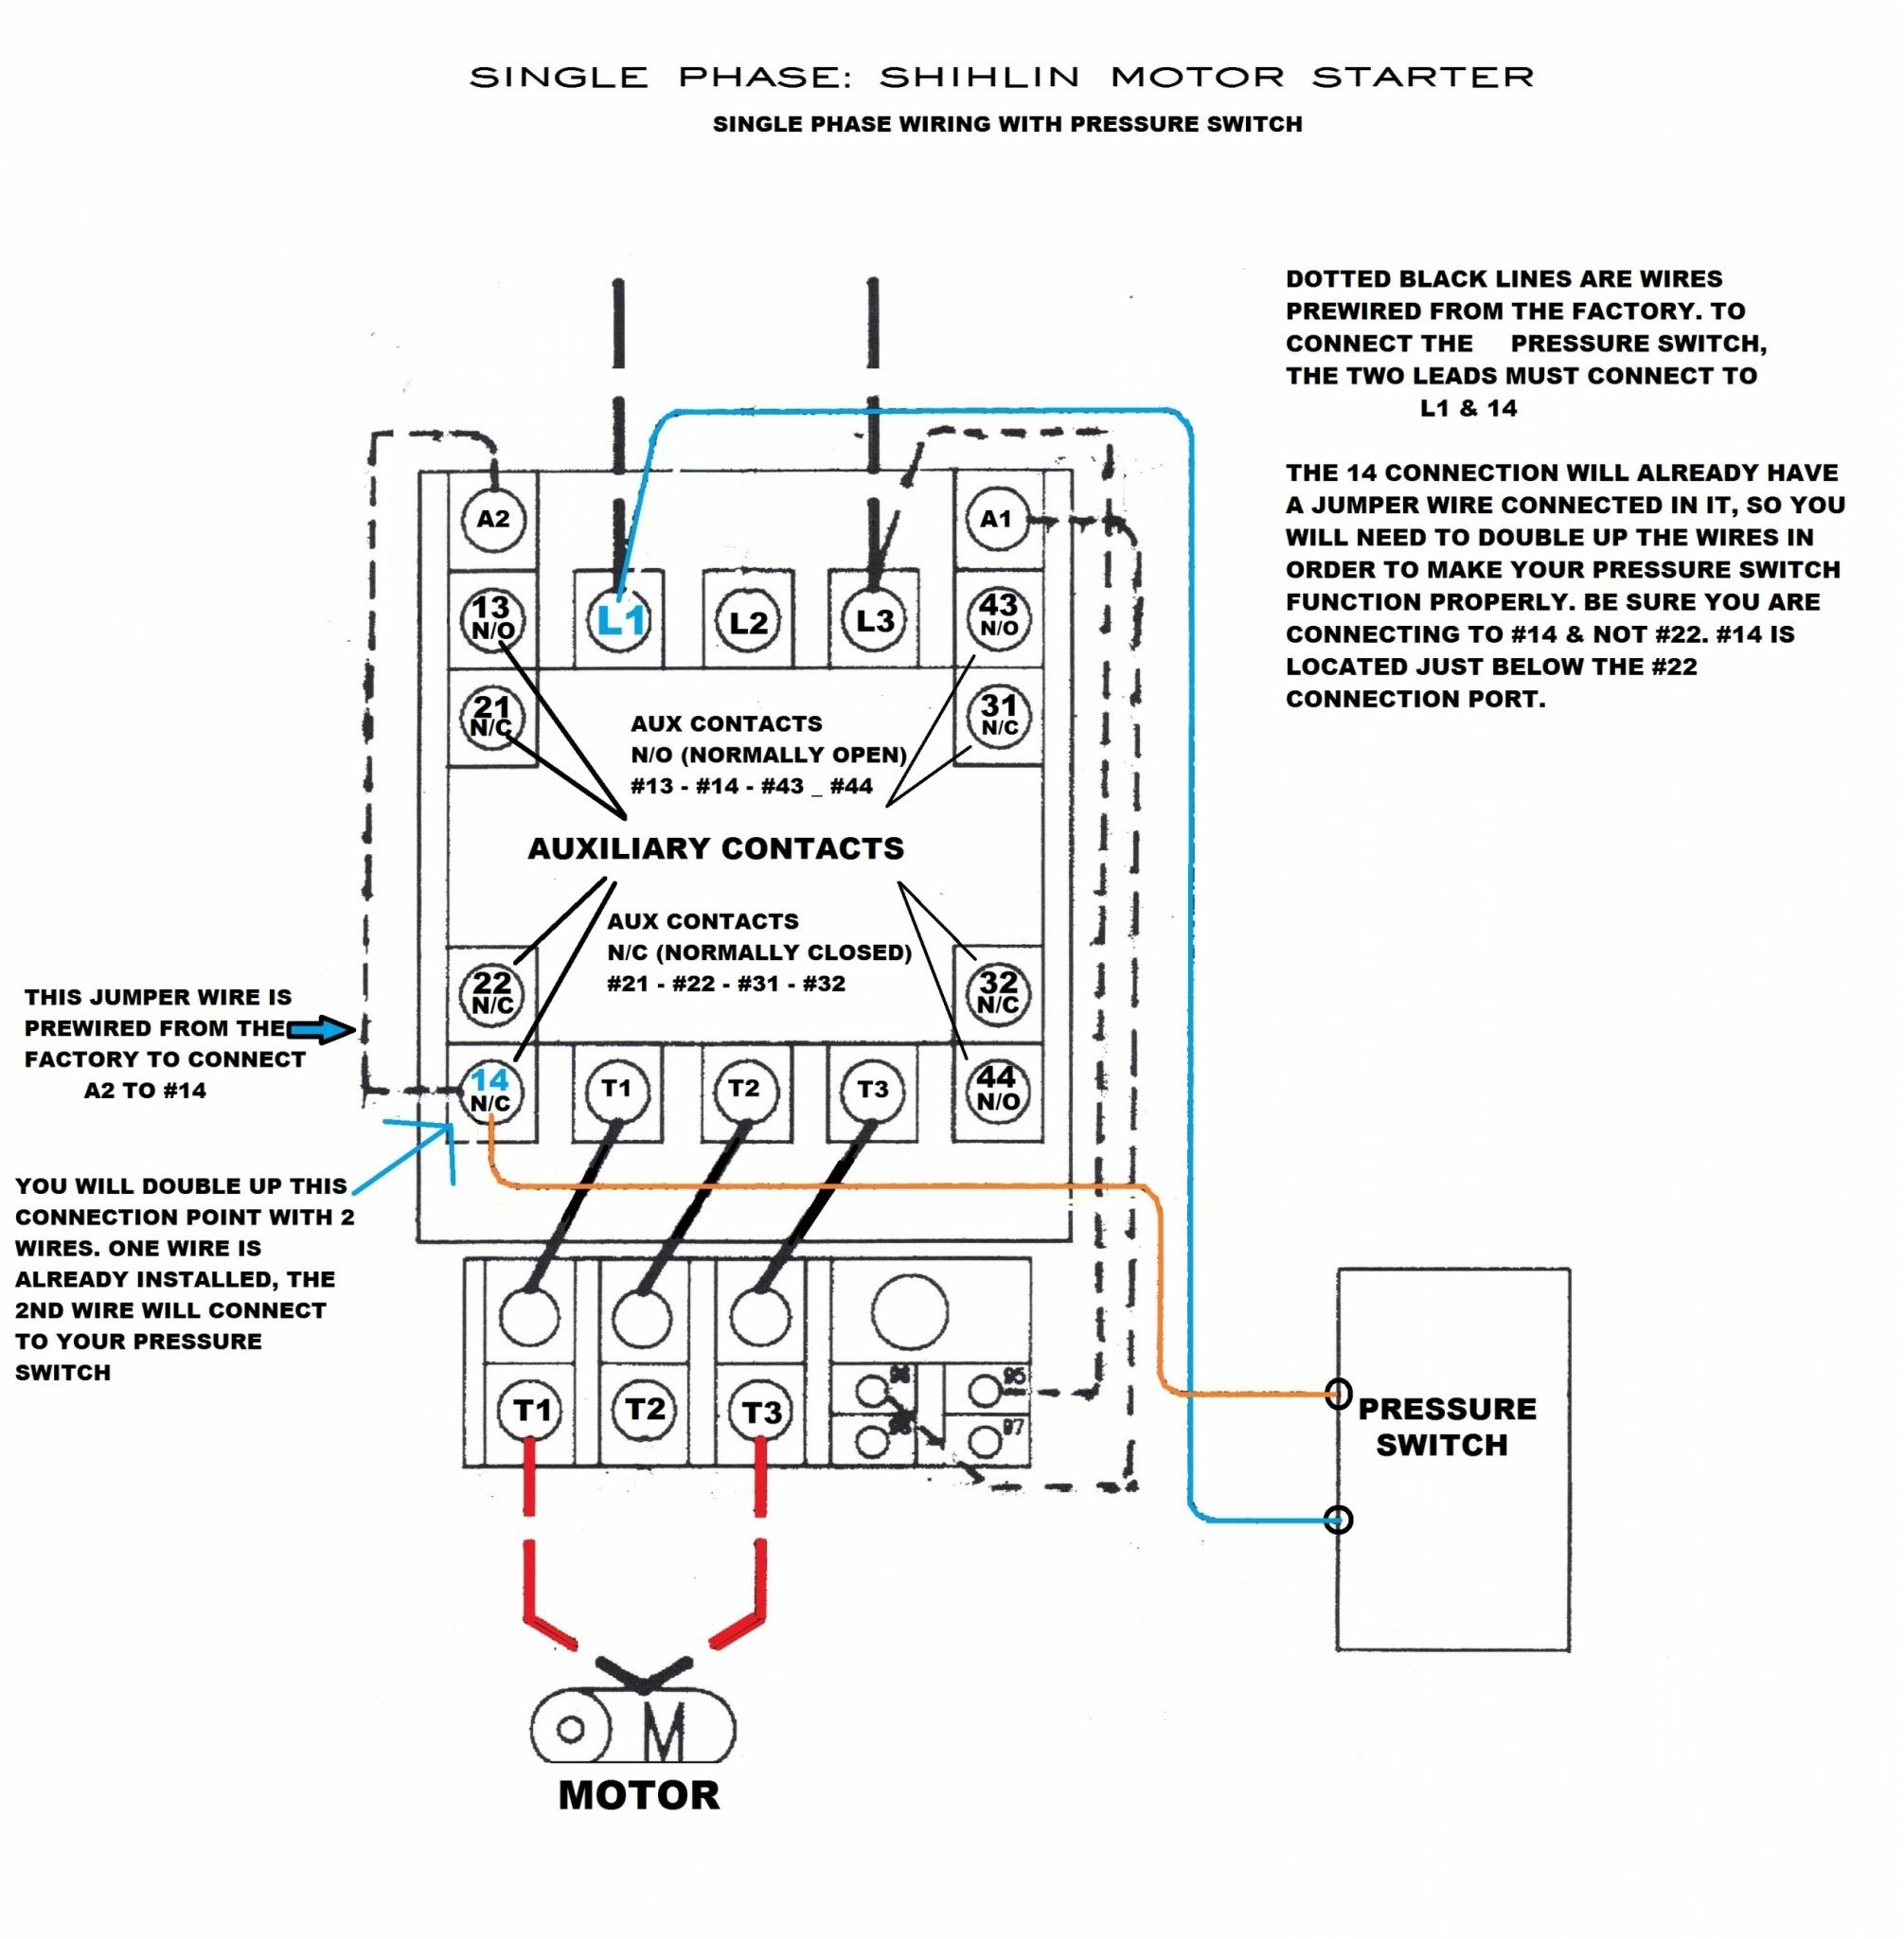 square d pumptrol pressure switch wiring diagram Download-Square D Well Pump Pressure Switch Wiring Diagram Picture Pumptrol Adjustment Wiring 0408 Schneider Electric 1-e